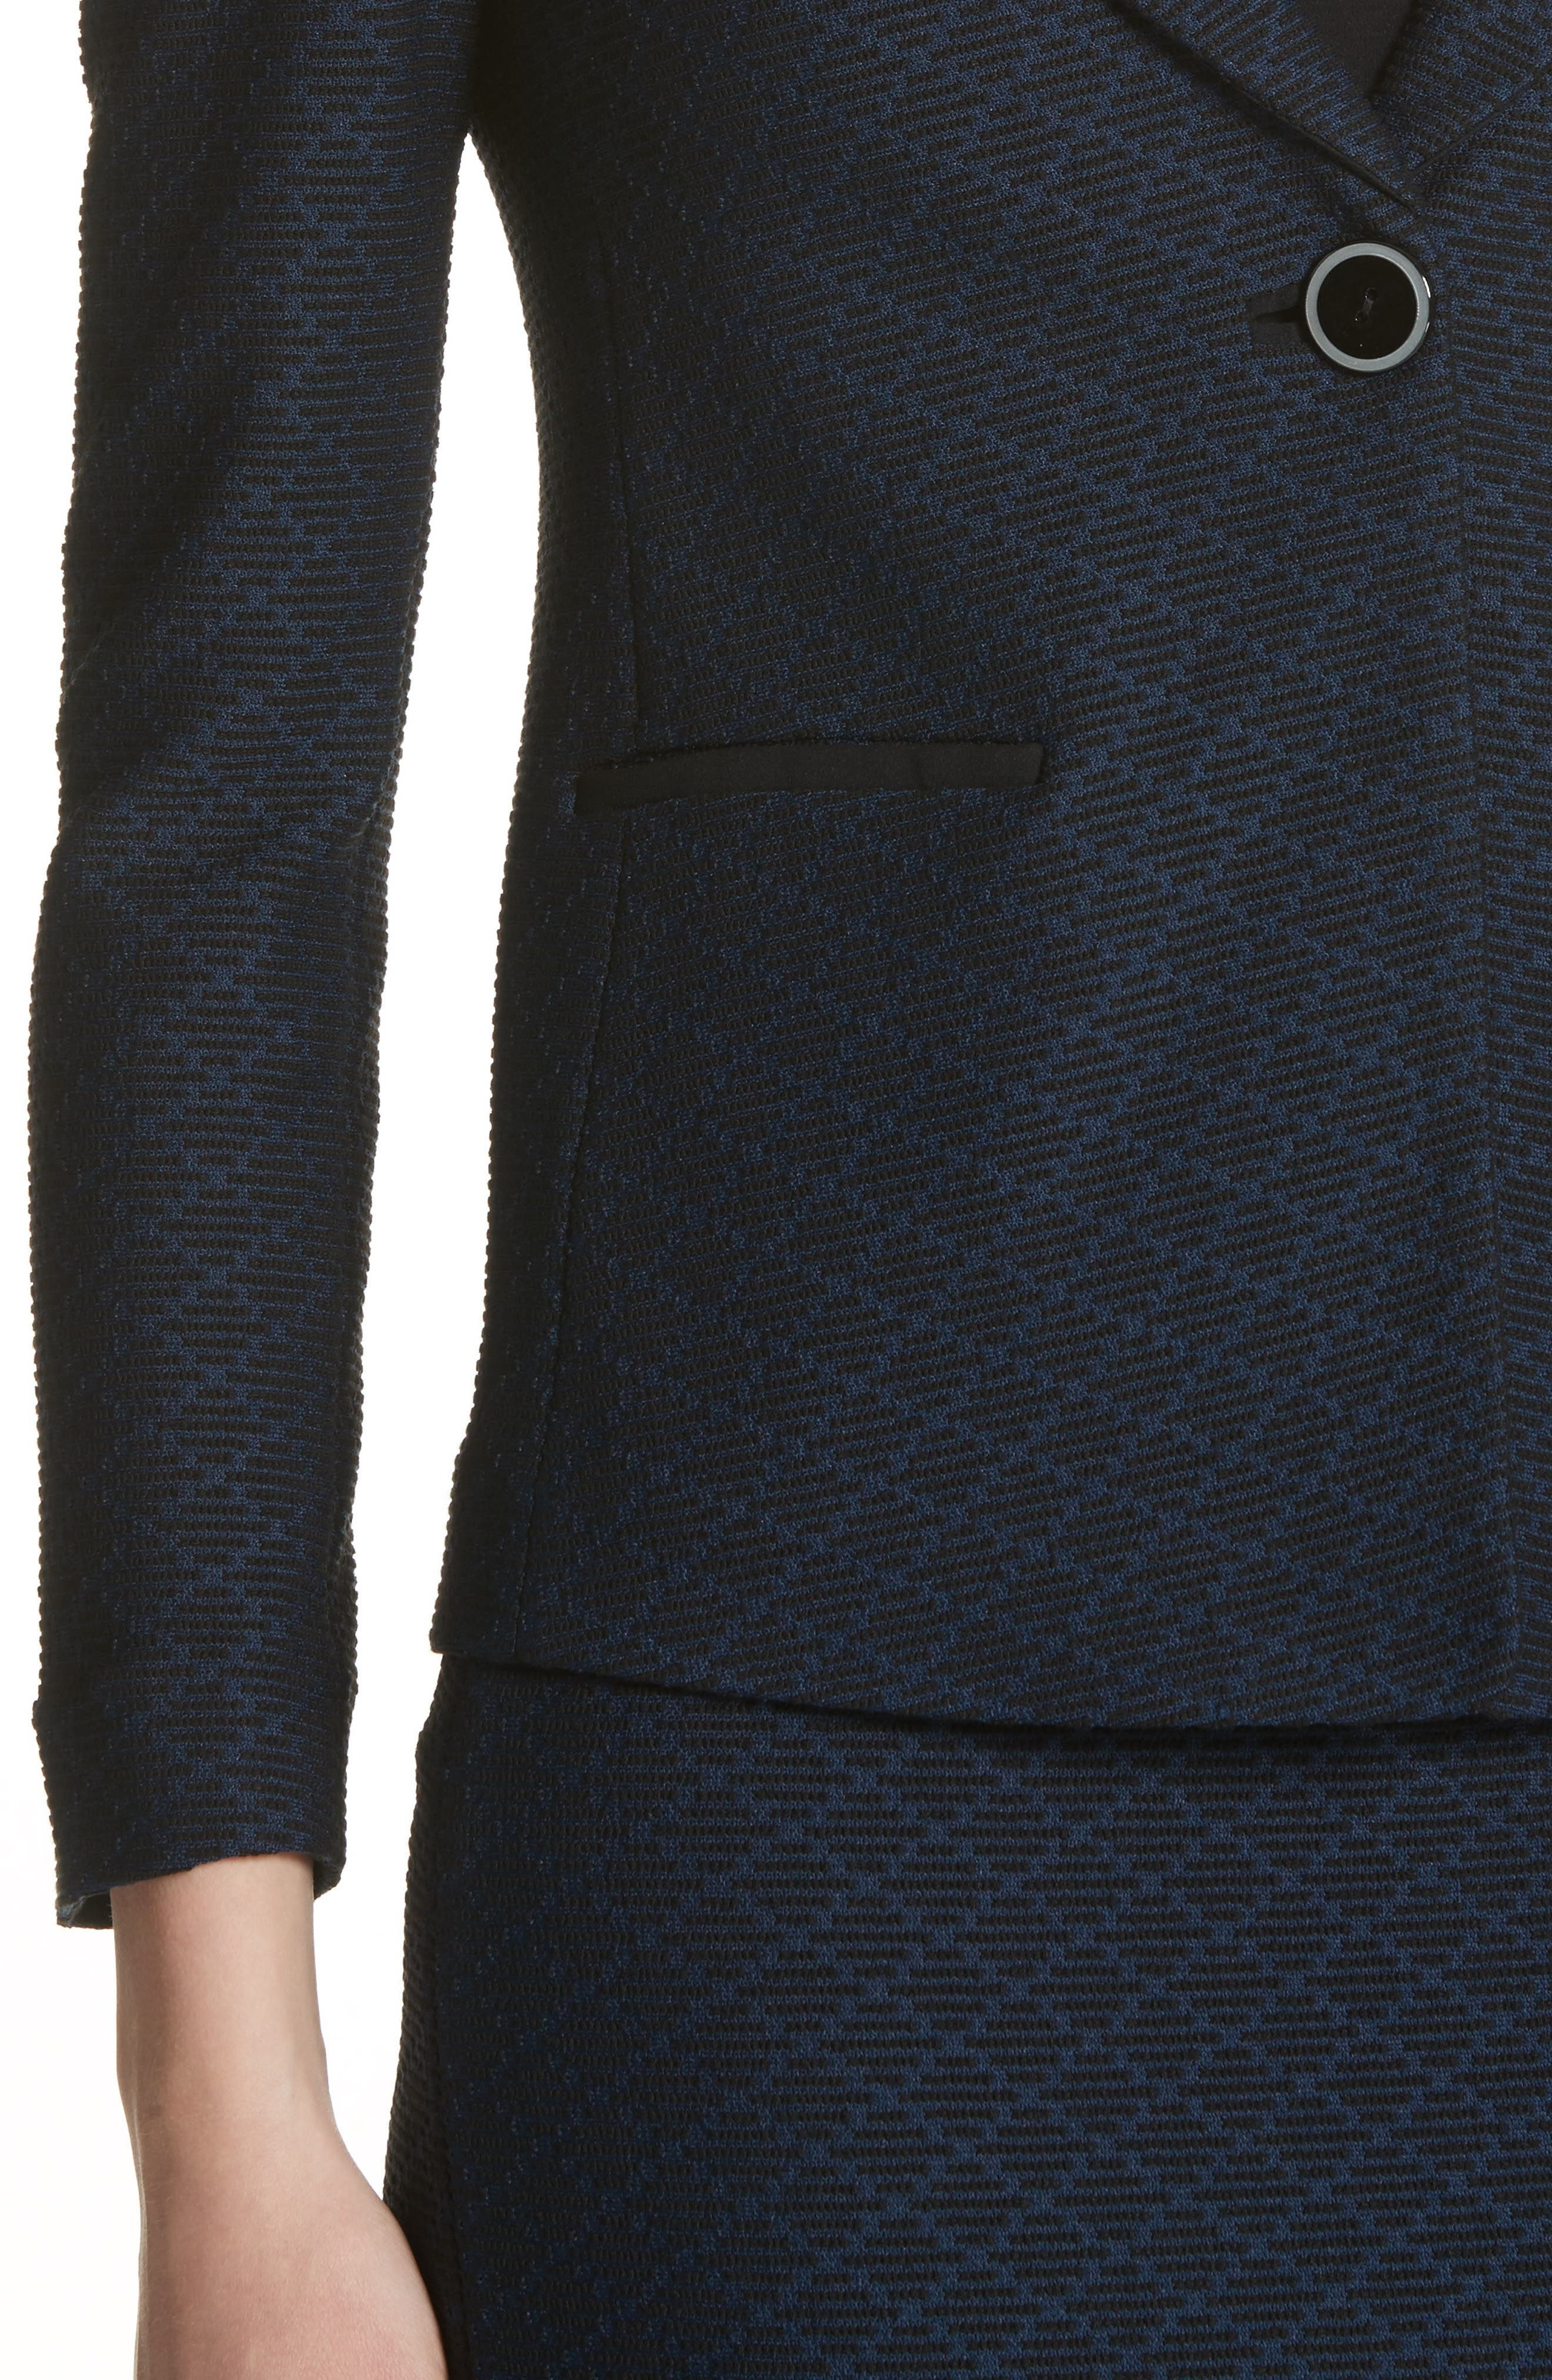 Diamond Jacquard Blazer,                             Alternate thumbnail 4, color,                             400